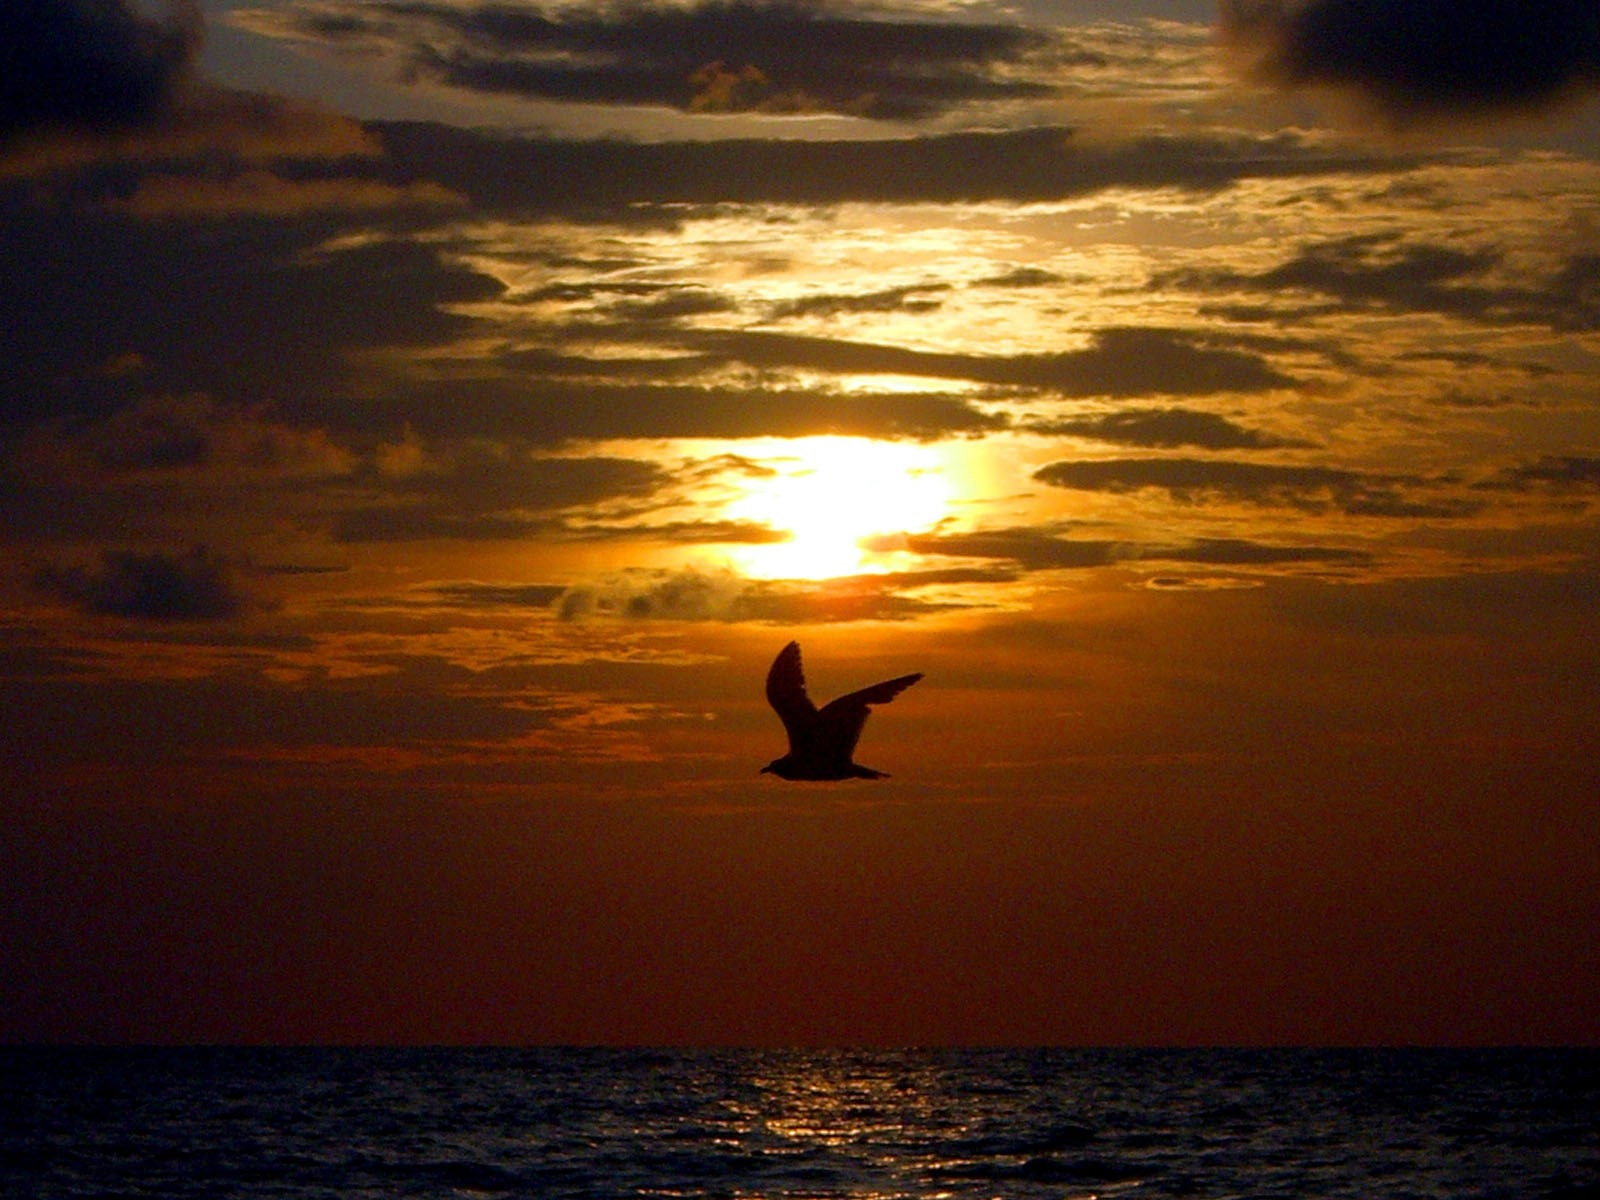 the silhouette of a bird in flight at sunset